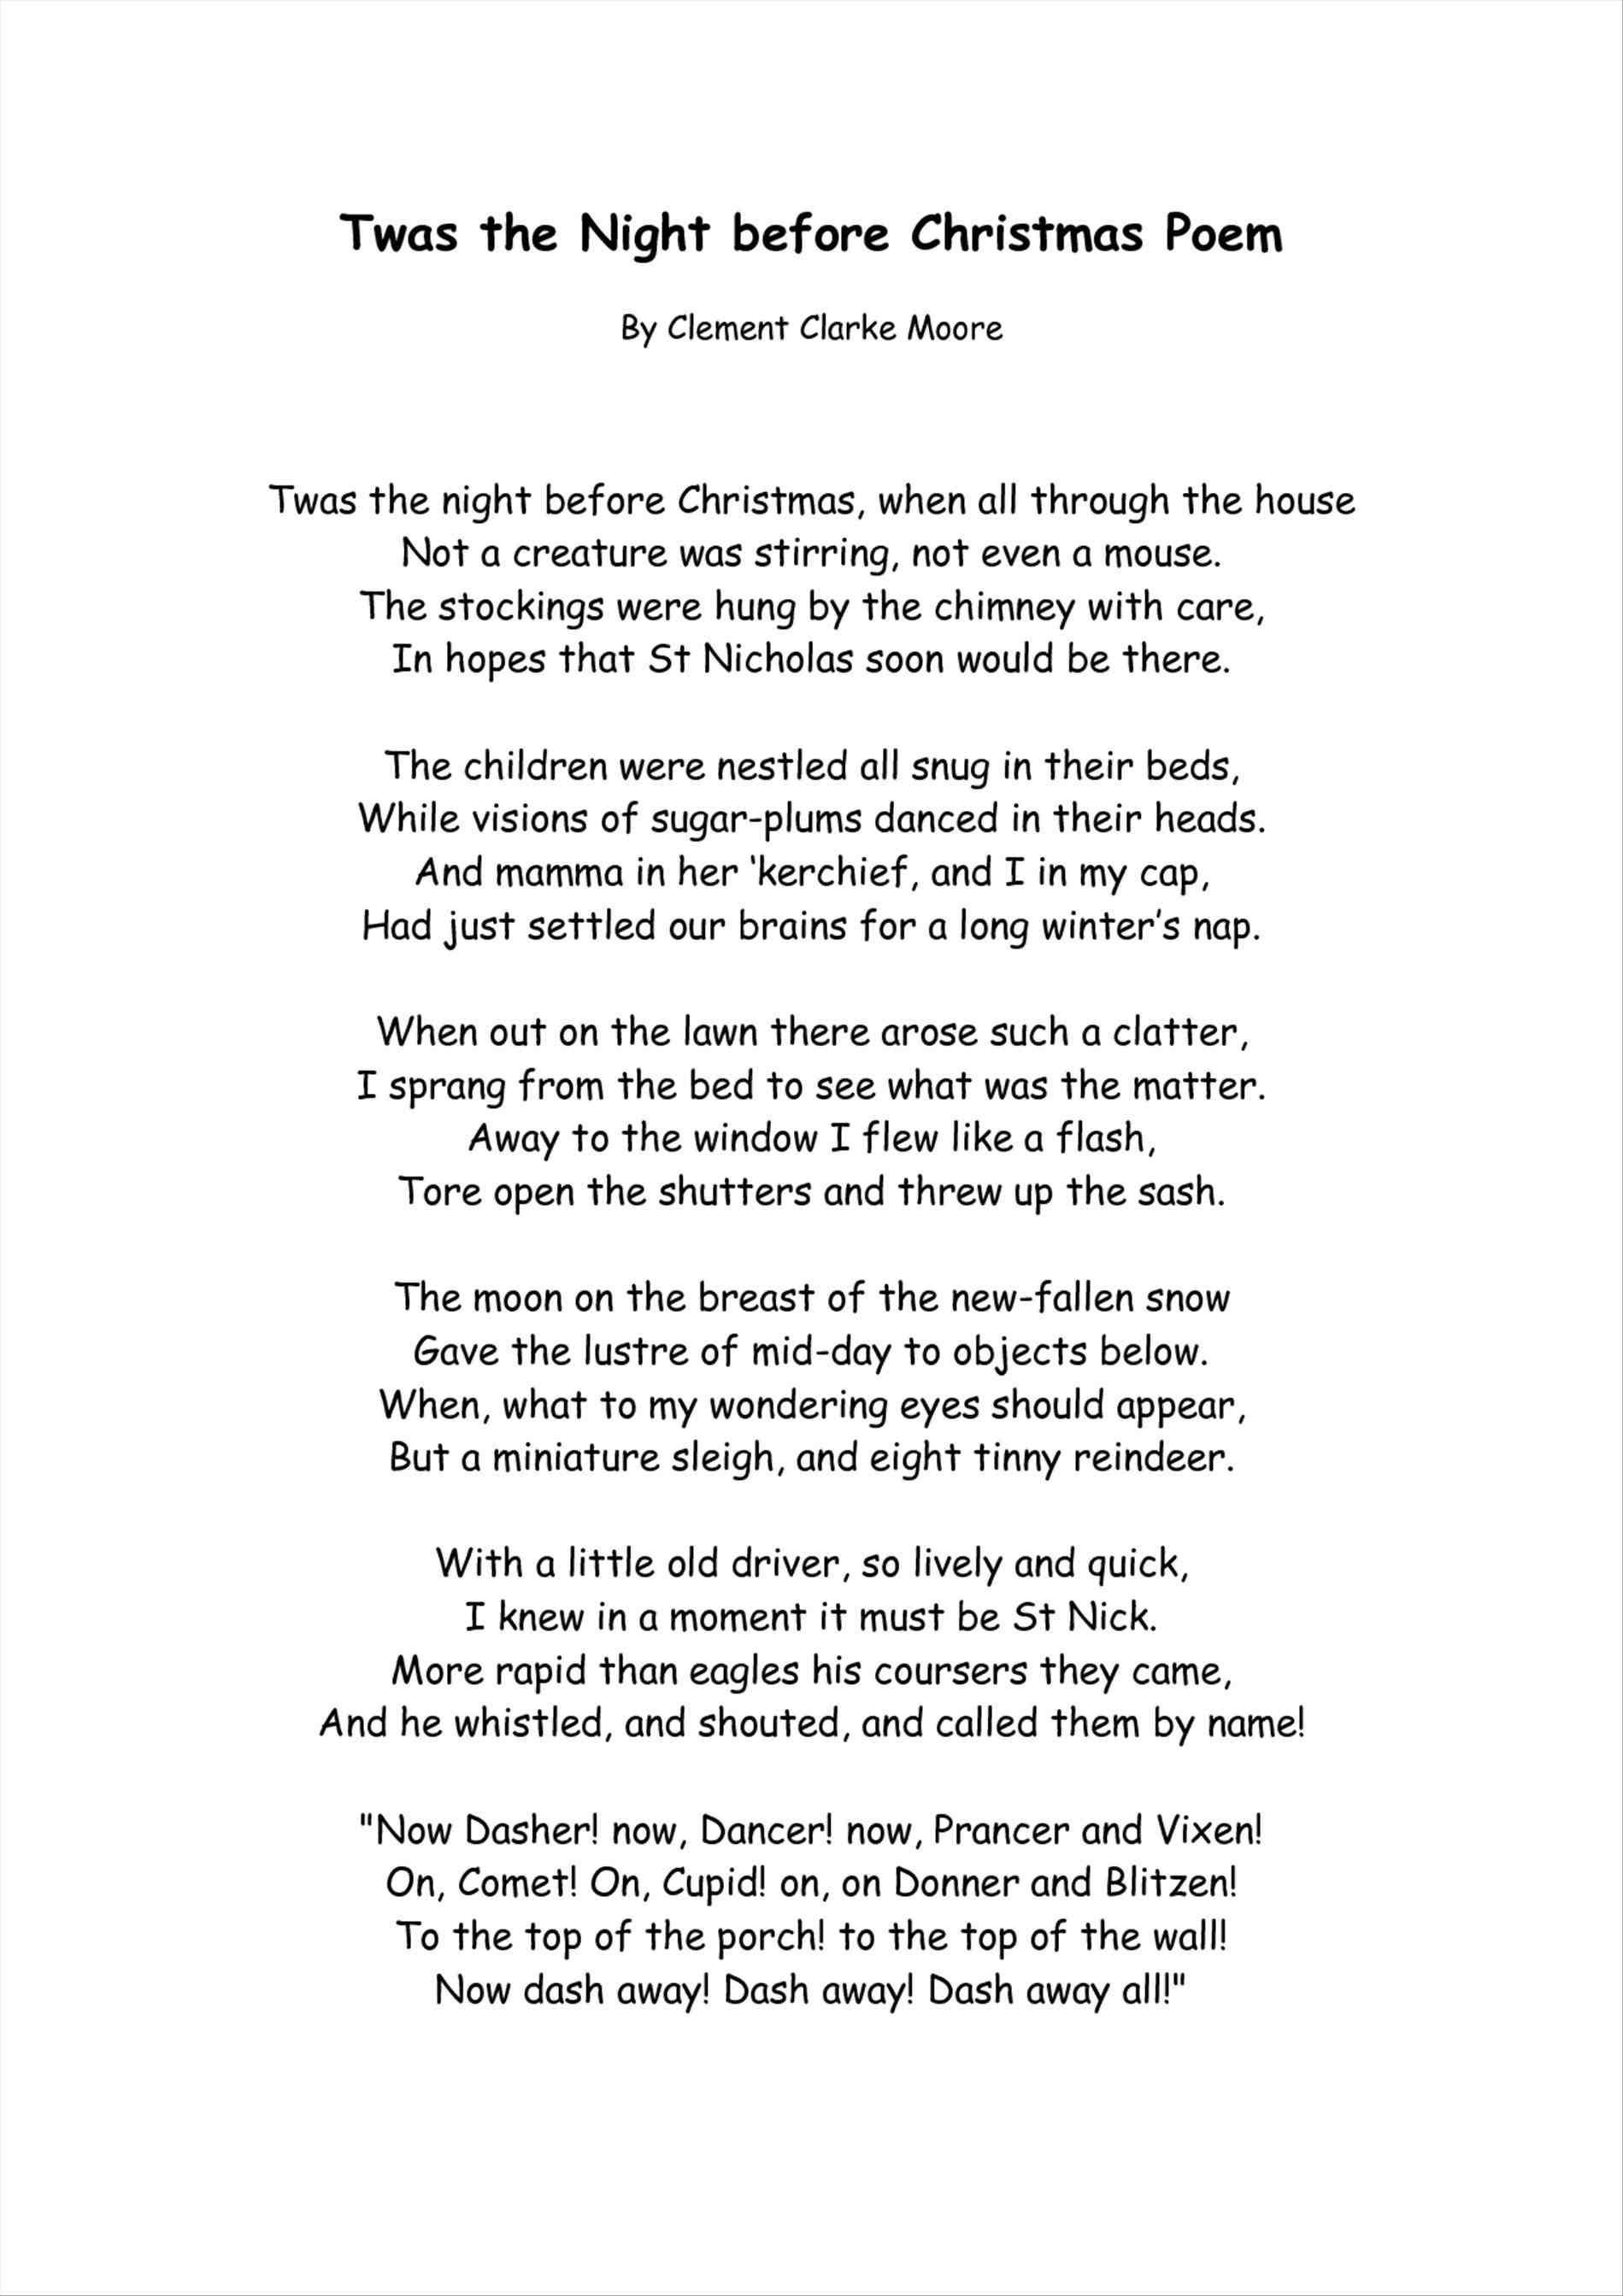 image regarding Poem the Dash Printable known as twas the evening prior to xmas poem printable